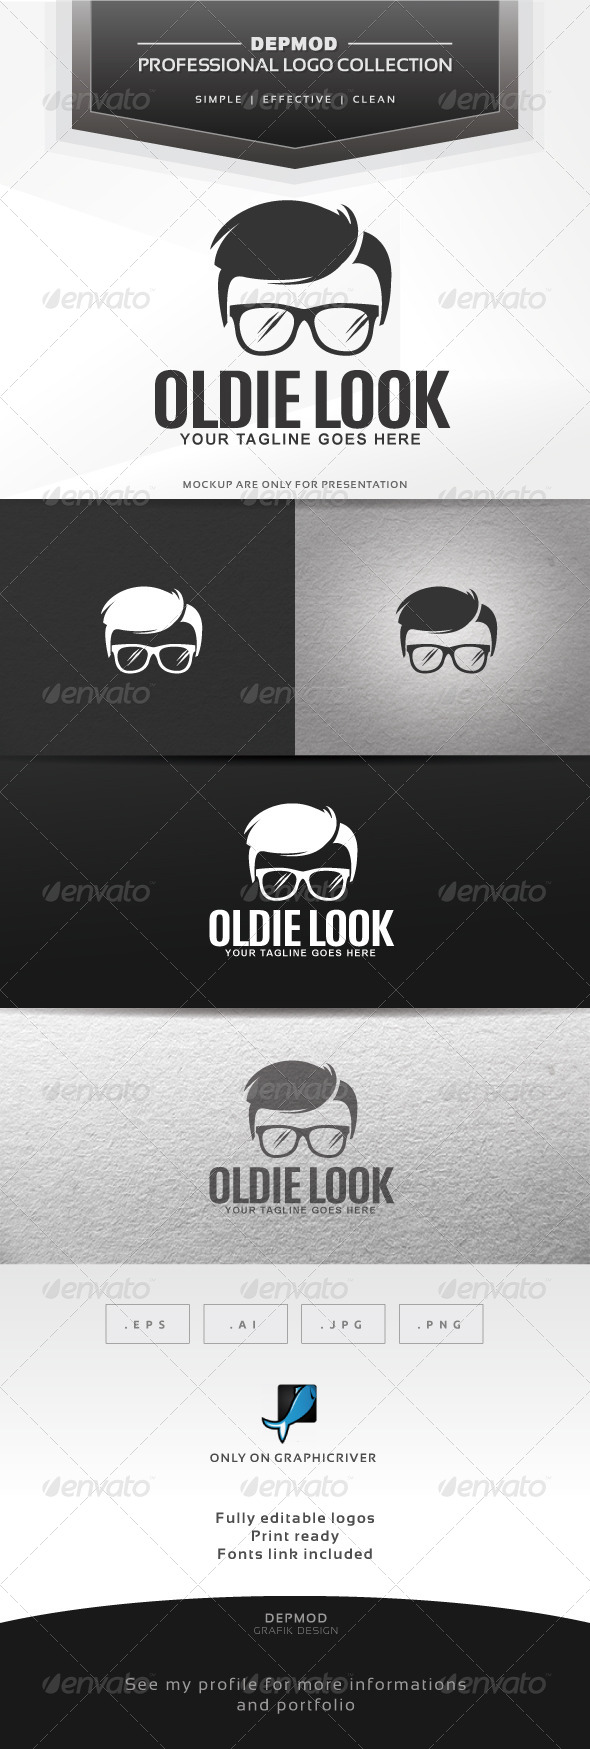 GraphicRiver Oldie Look Logo 6367641